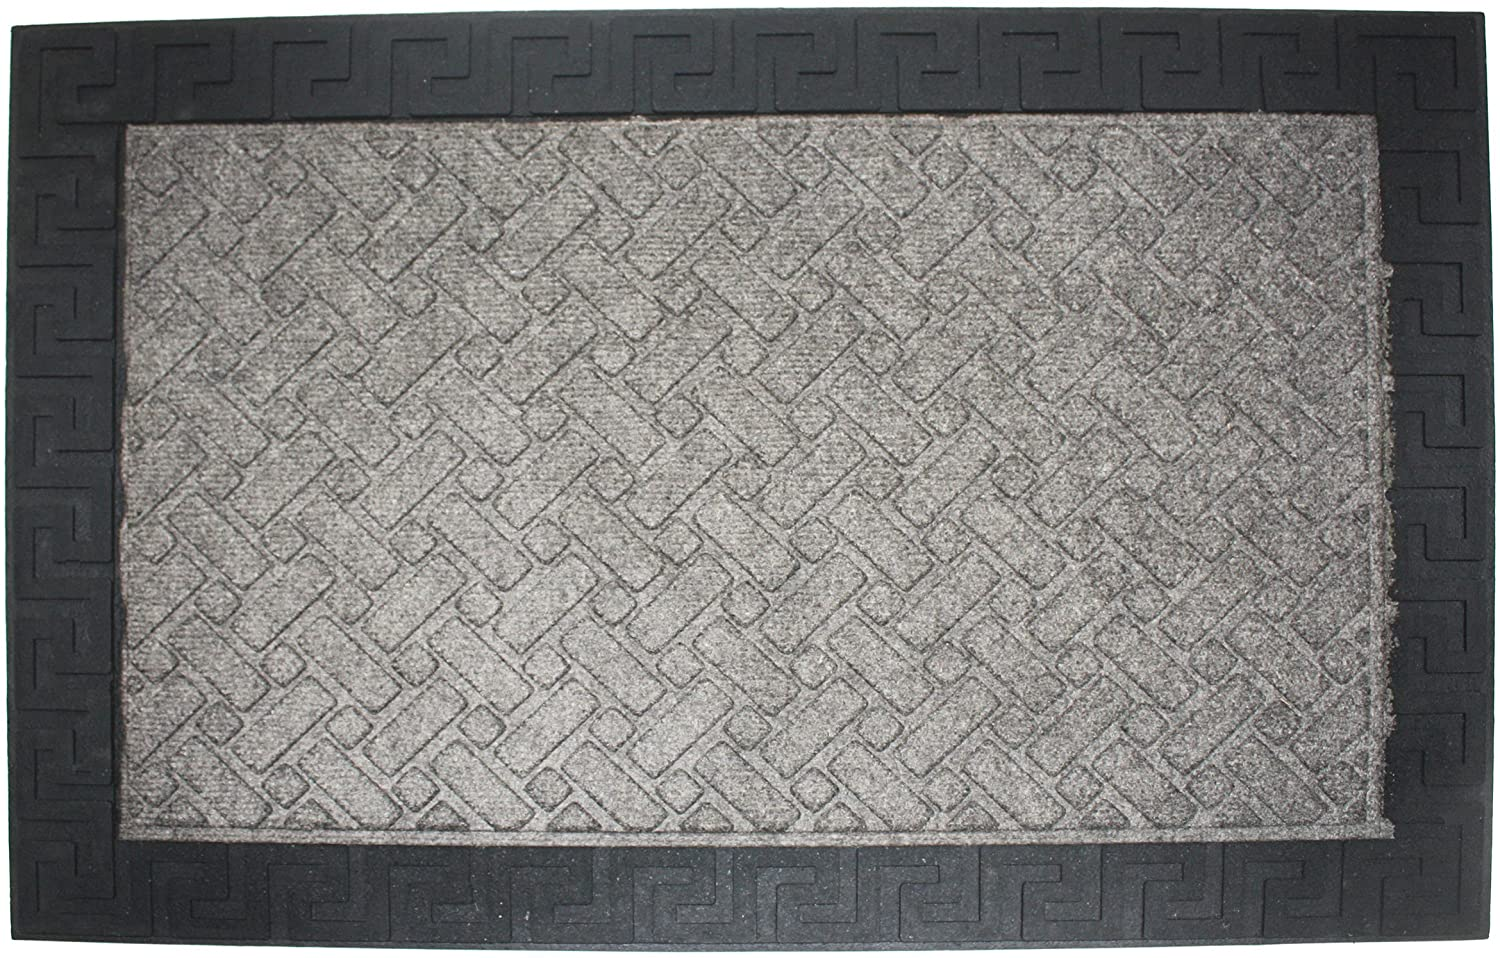 DII Durable Low Profile, Pet Friendly Indoor/Outdoor Doormat for Home or Commercial Use, 24x36, Charcoal Utility Mat